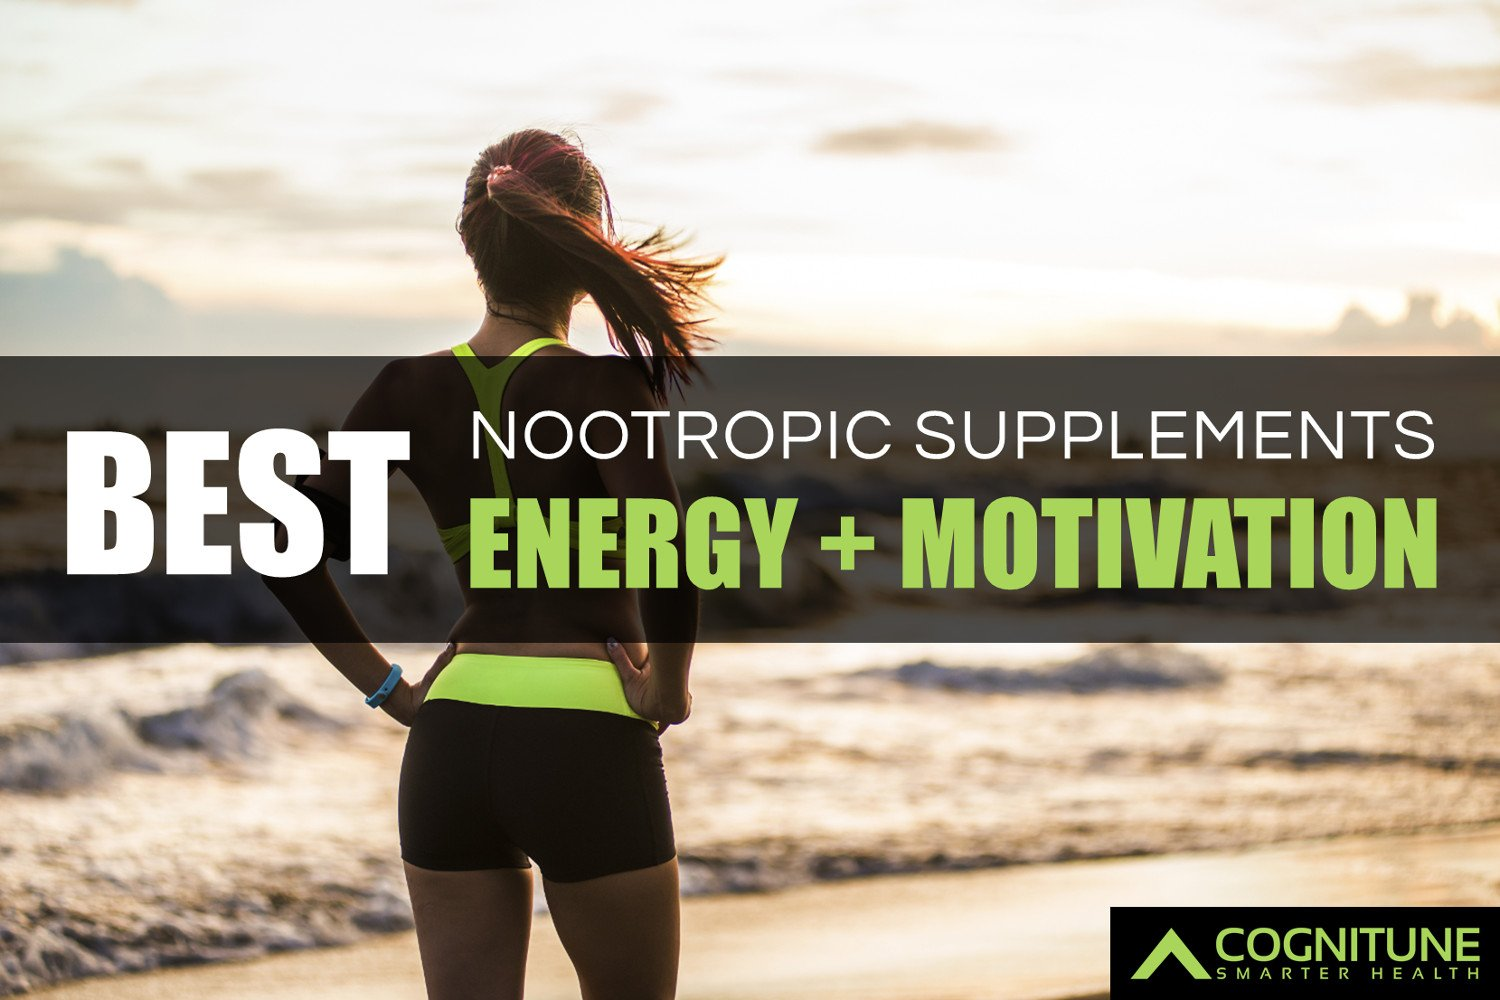 7 Best Nootropic Supplements For Improving Energy Motivation 2019